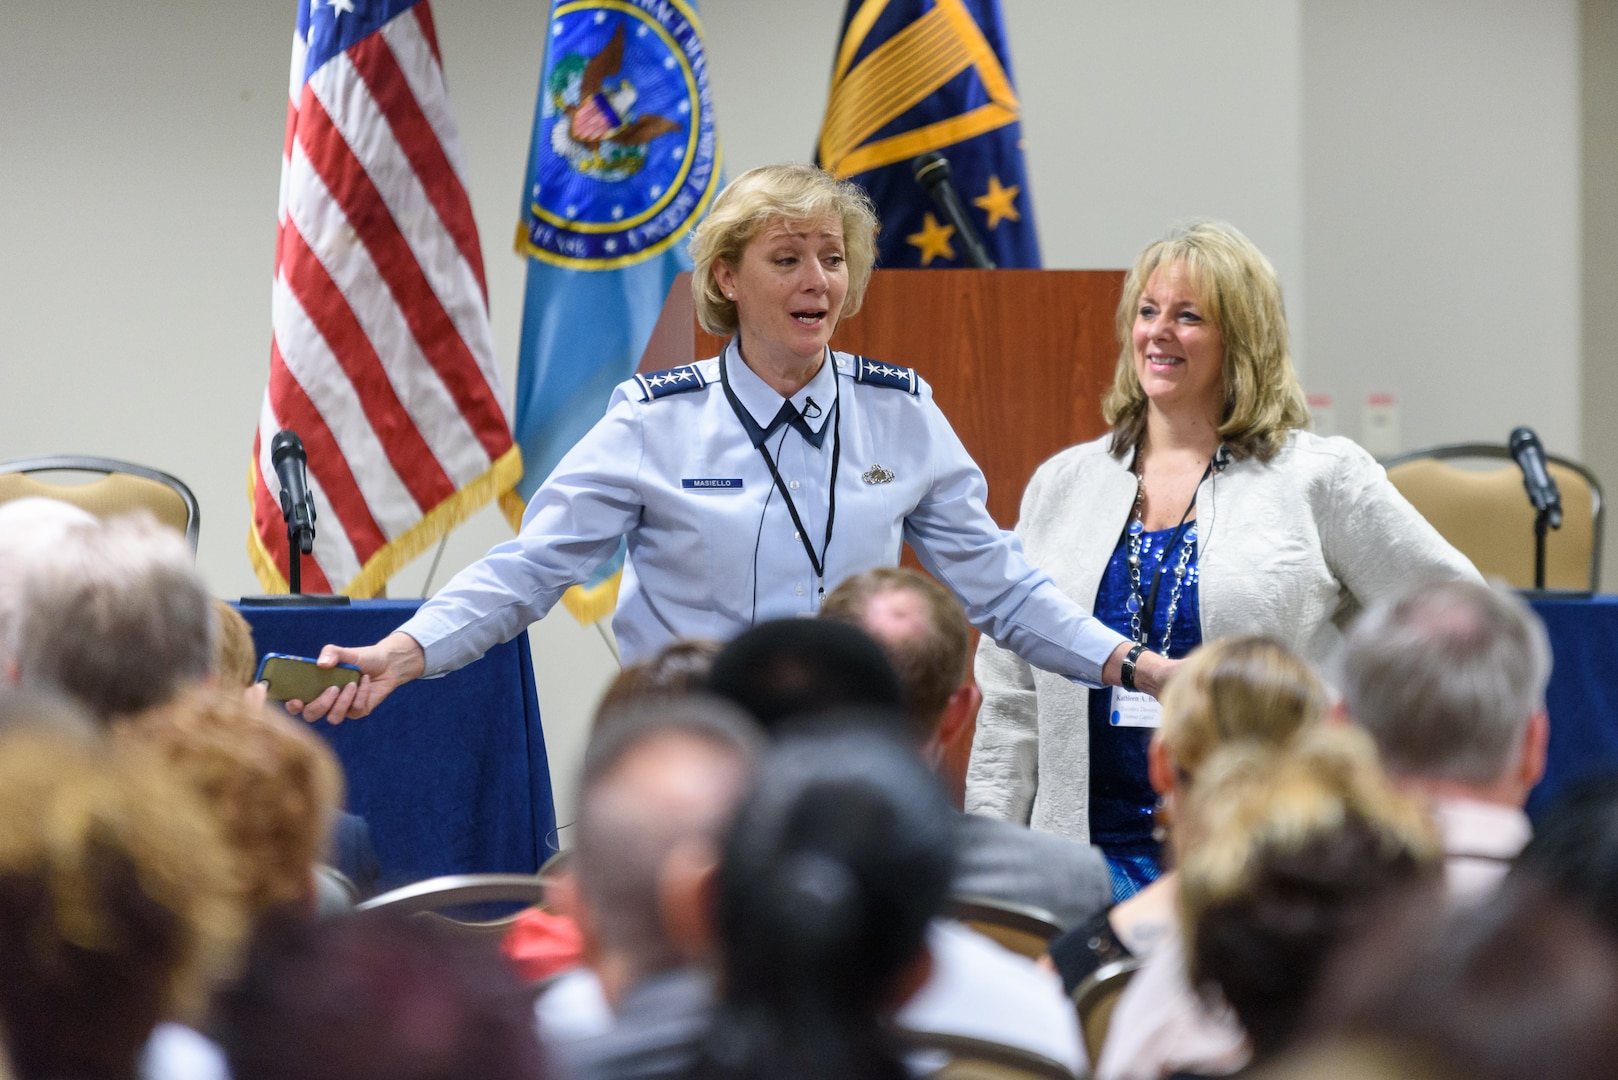 Kathy Butera, Defense Contract Management Agency Human Capital director, looks on as Air Force Lt. Gen. Wendy Masiello, agency director, talks with DCMA professionals during a recent three-day training workshop. (DCMA photo by Patrick Tremblay)